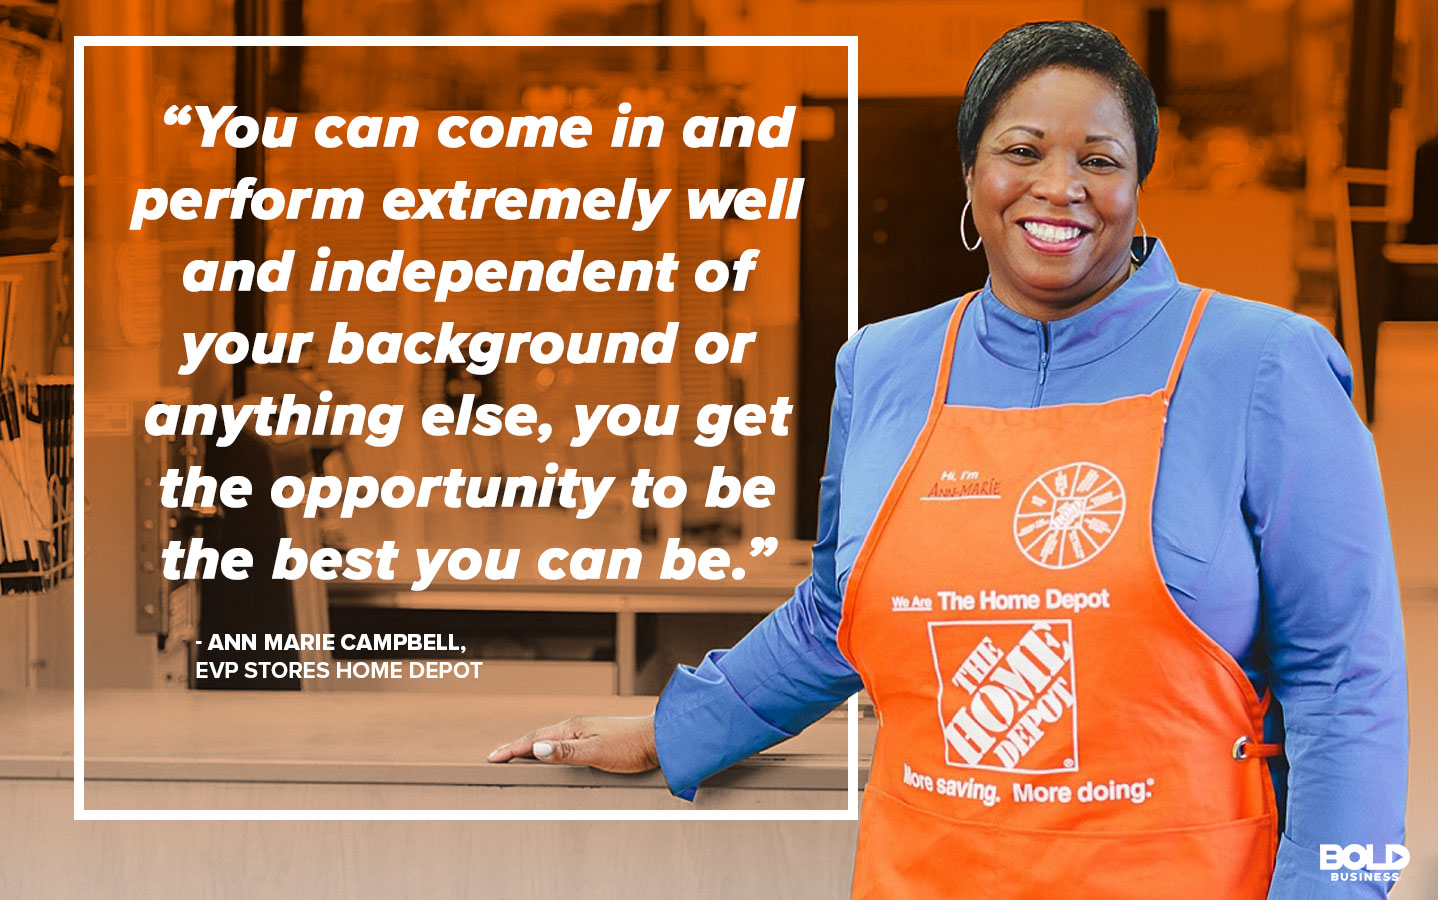 Ann Marie Campbell, EVP of The Home Depot describing bold leadership and Home Depot Community